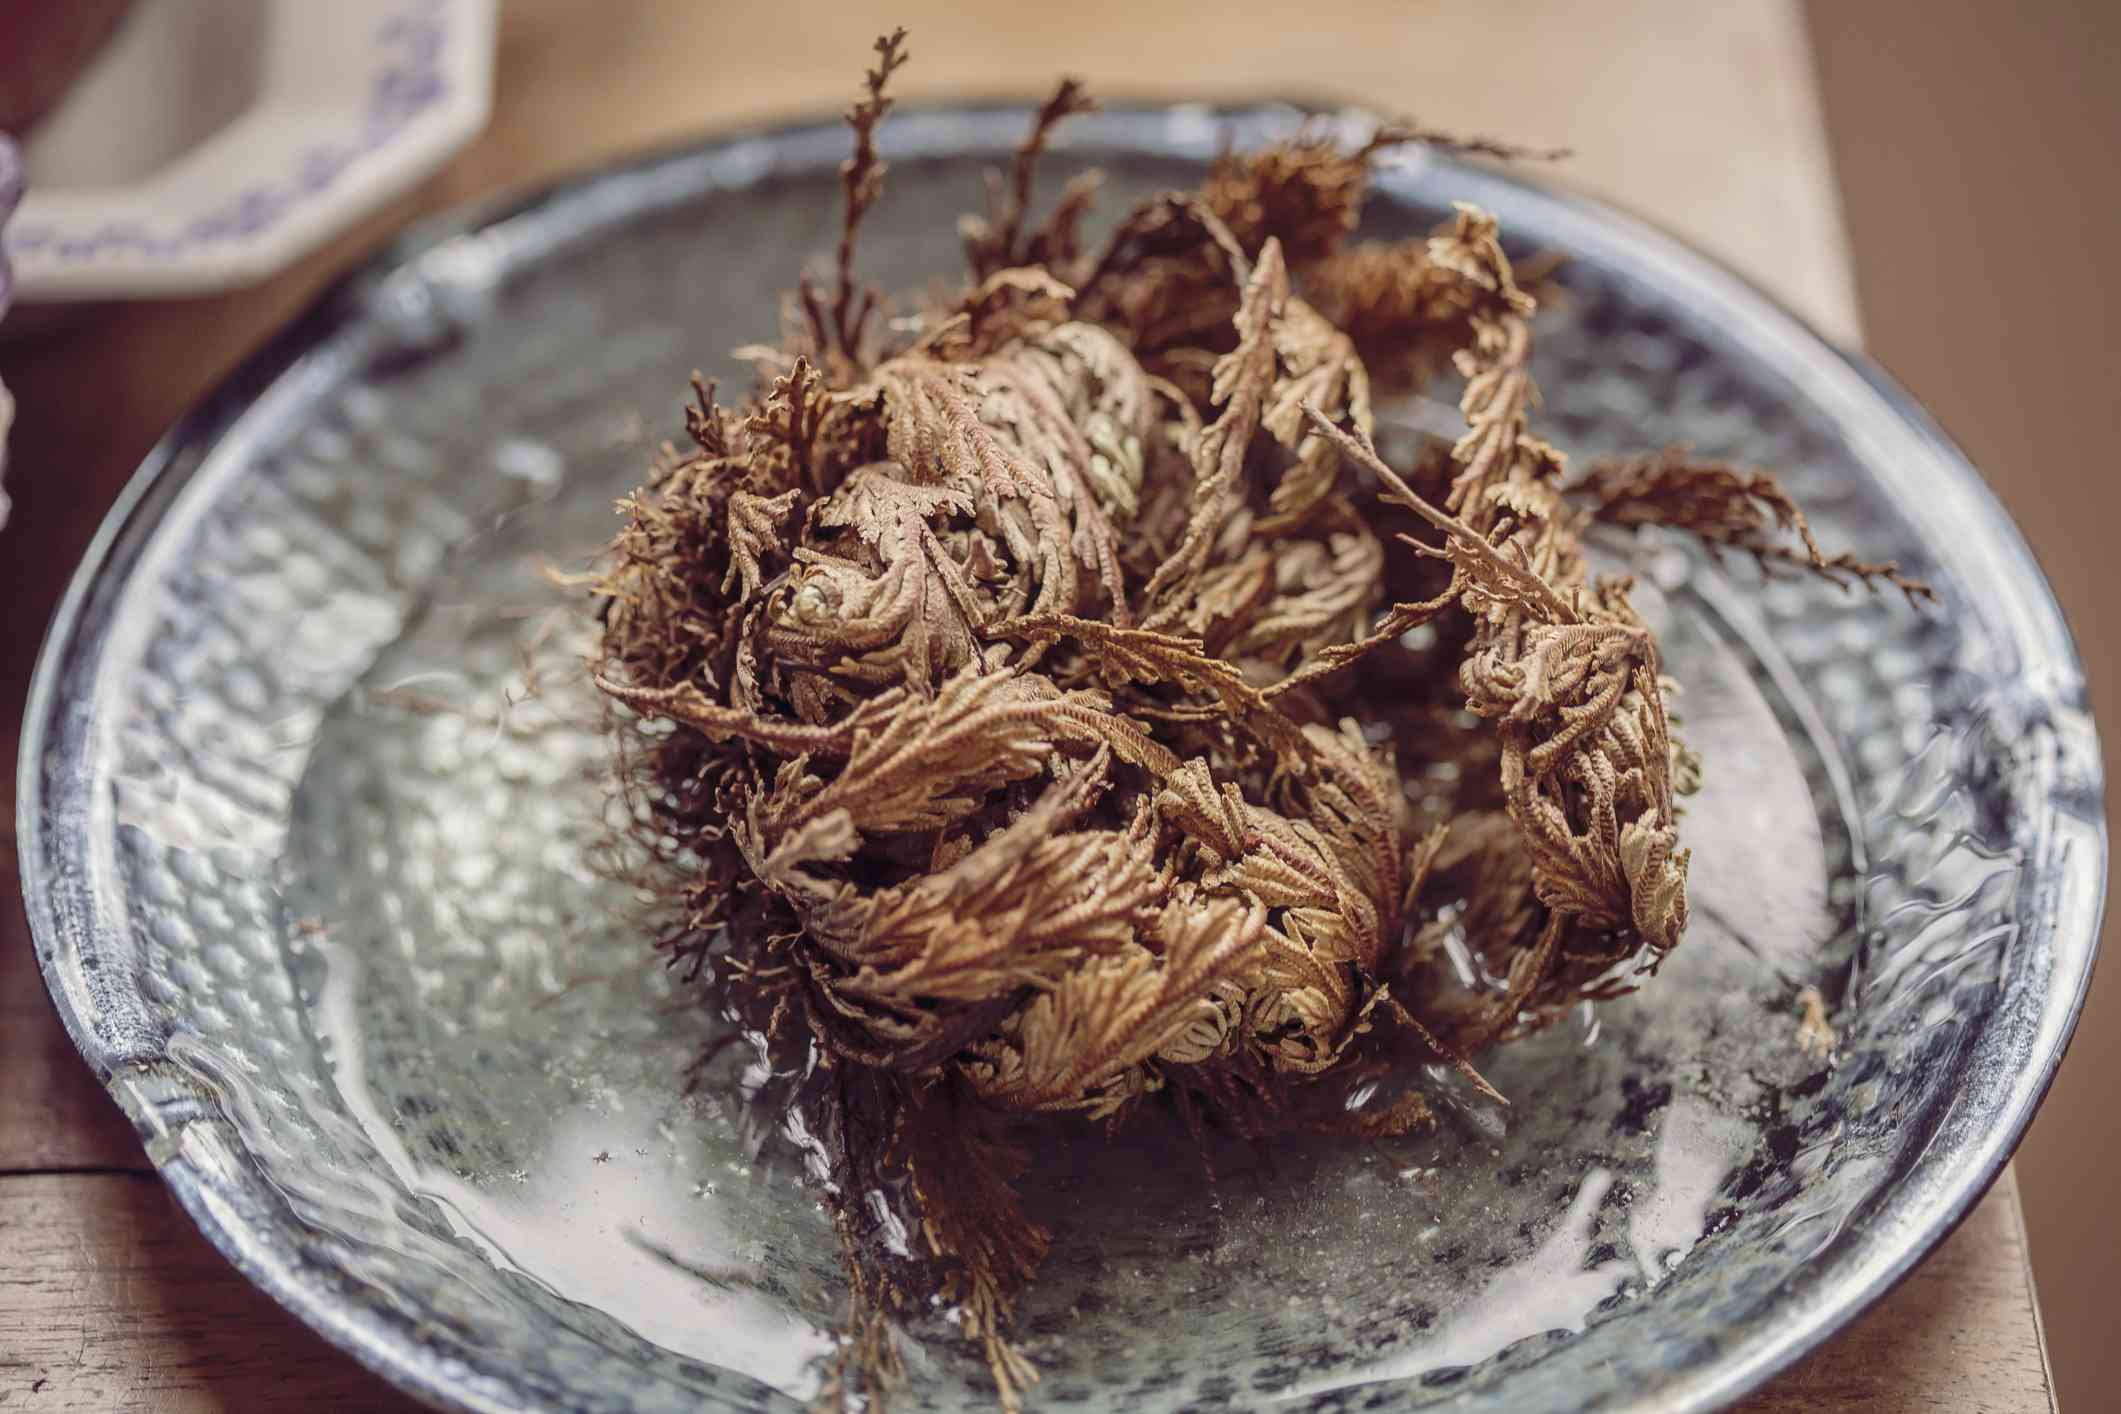 Selaginella lepidophylla (resurrection plant, rose of Jericho, false rose of Jericho) dried in a bowl of water getting ready to rehydrate.